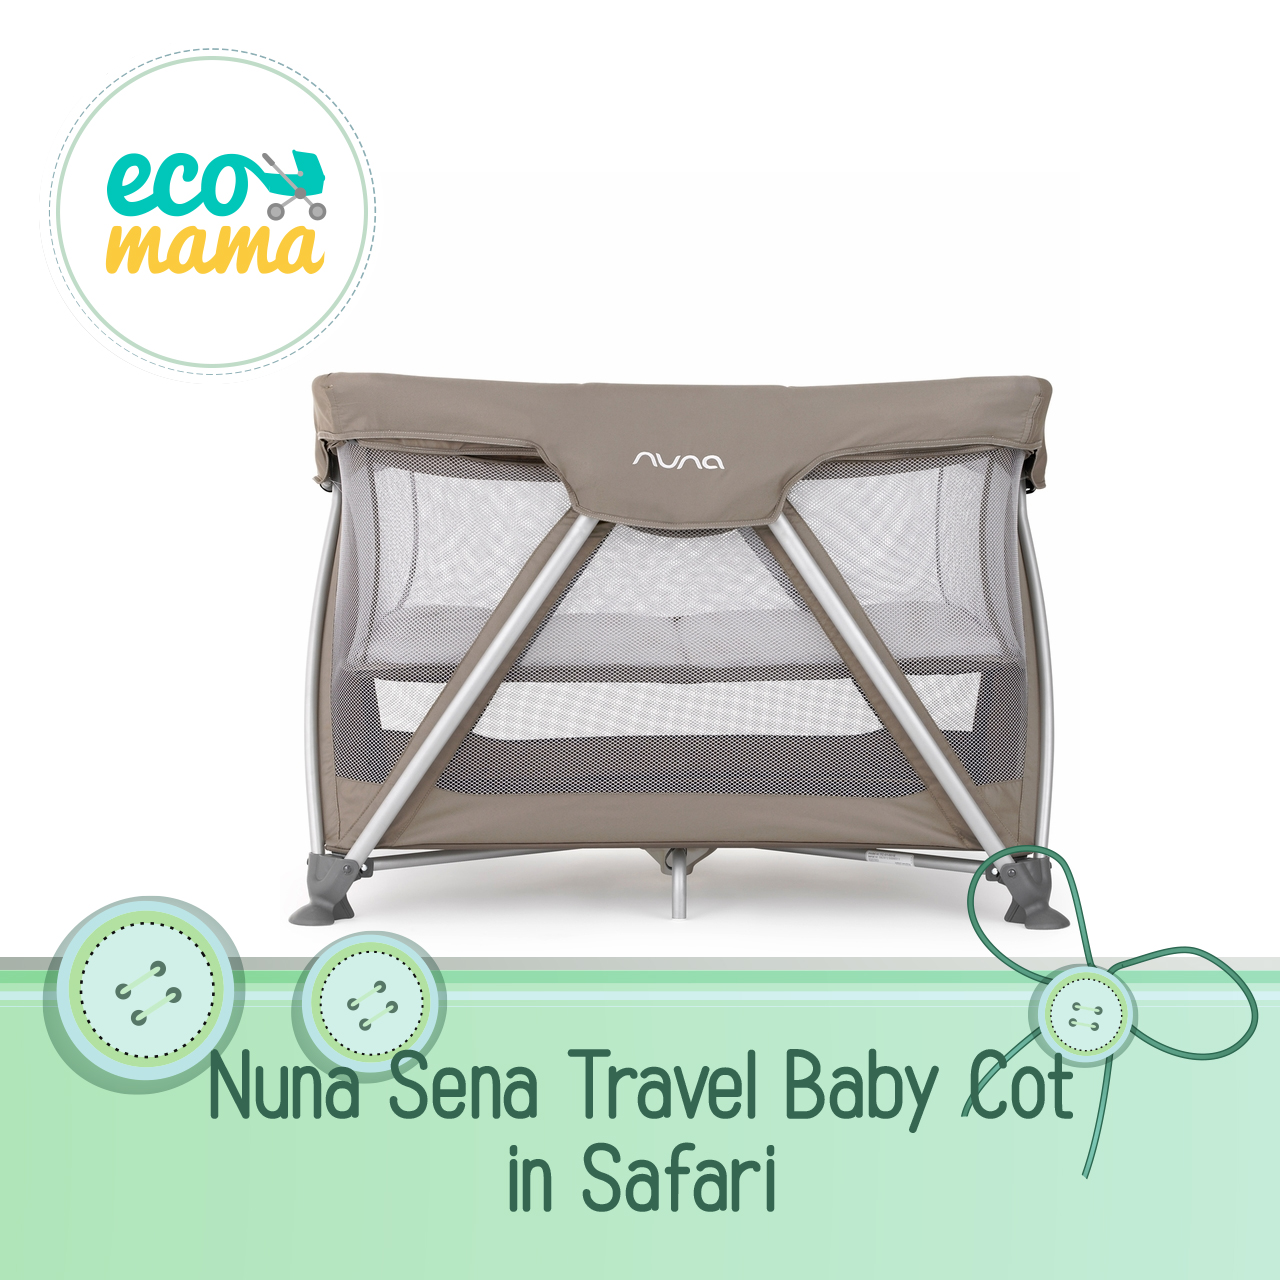 Nuna Sena Travel Crib in Safari